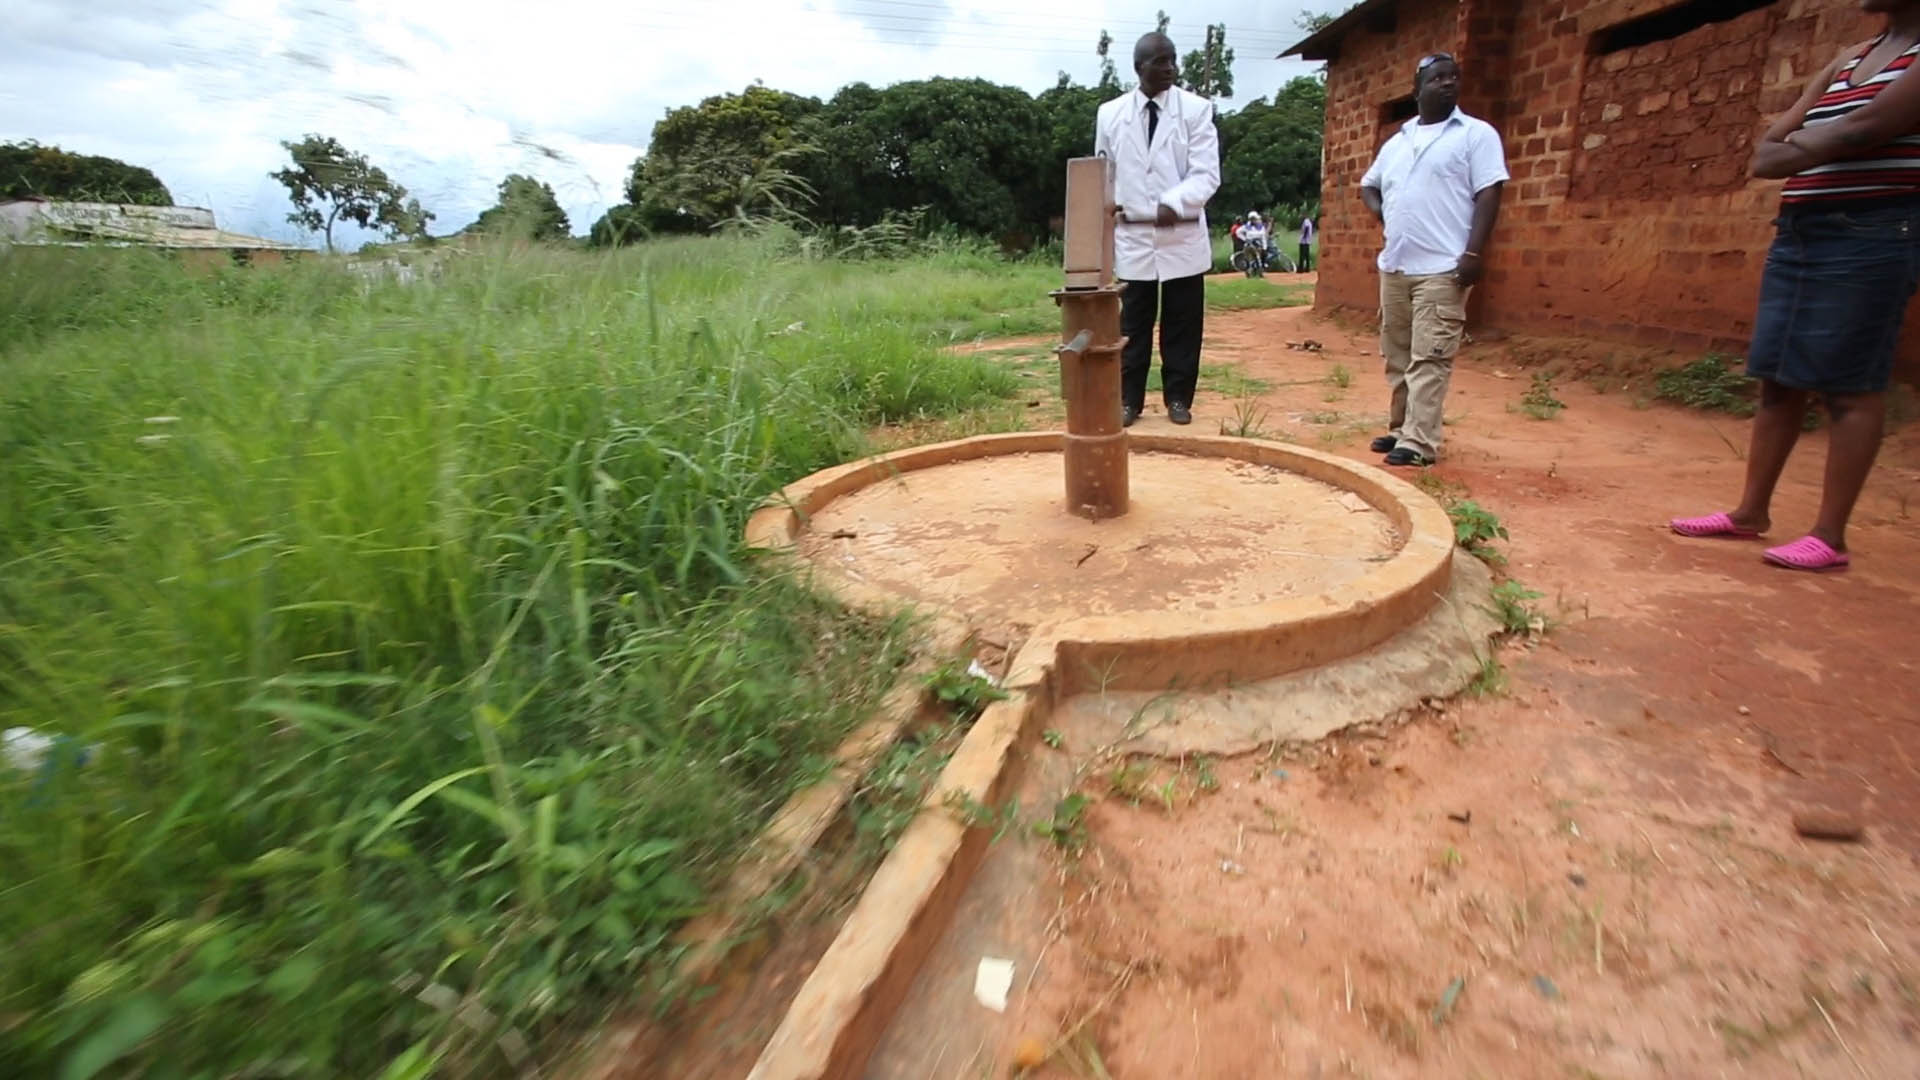 Water no longer flows from this well in Zambia. It is broken and in need of repairs.